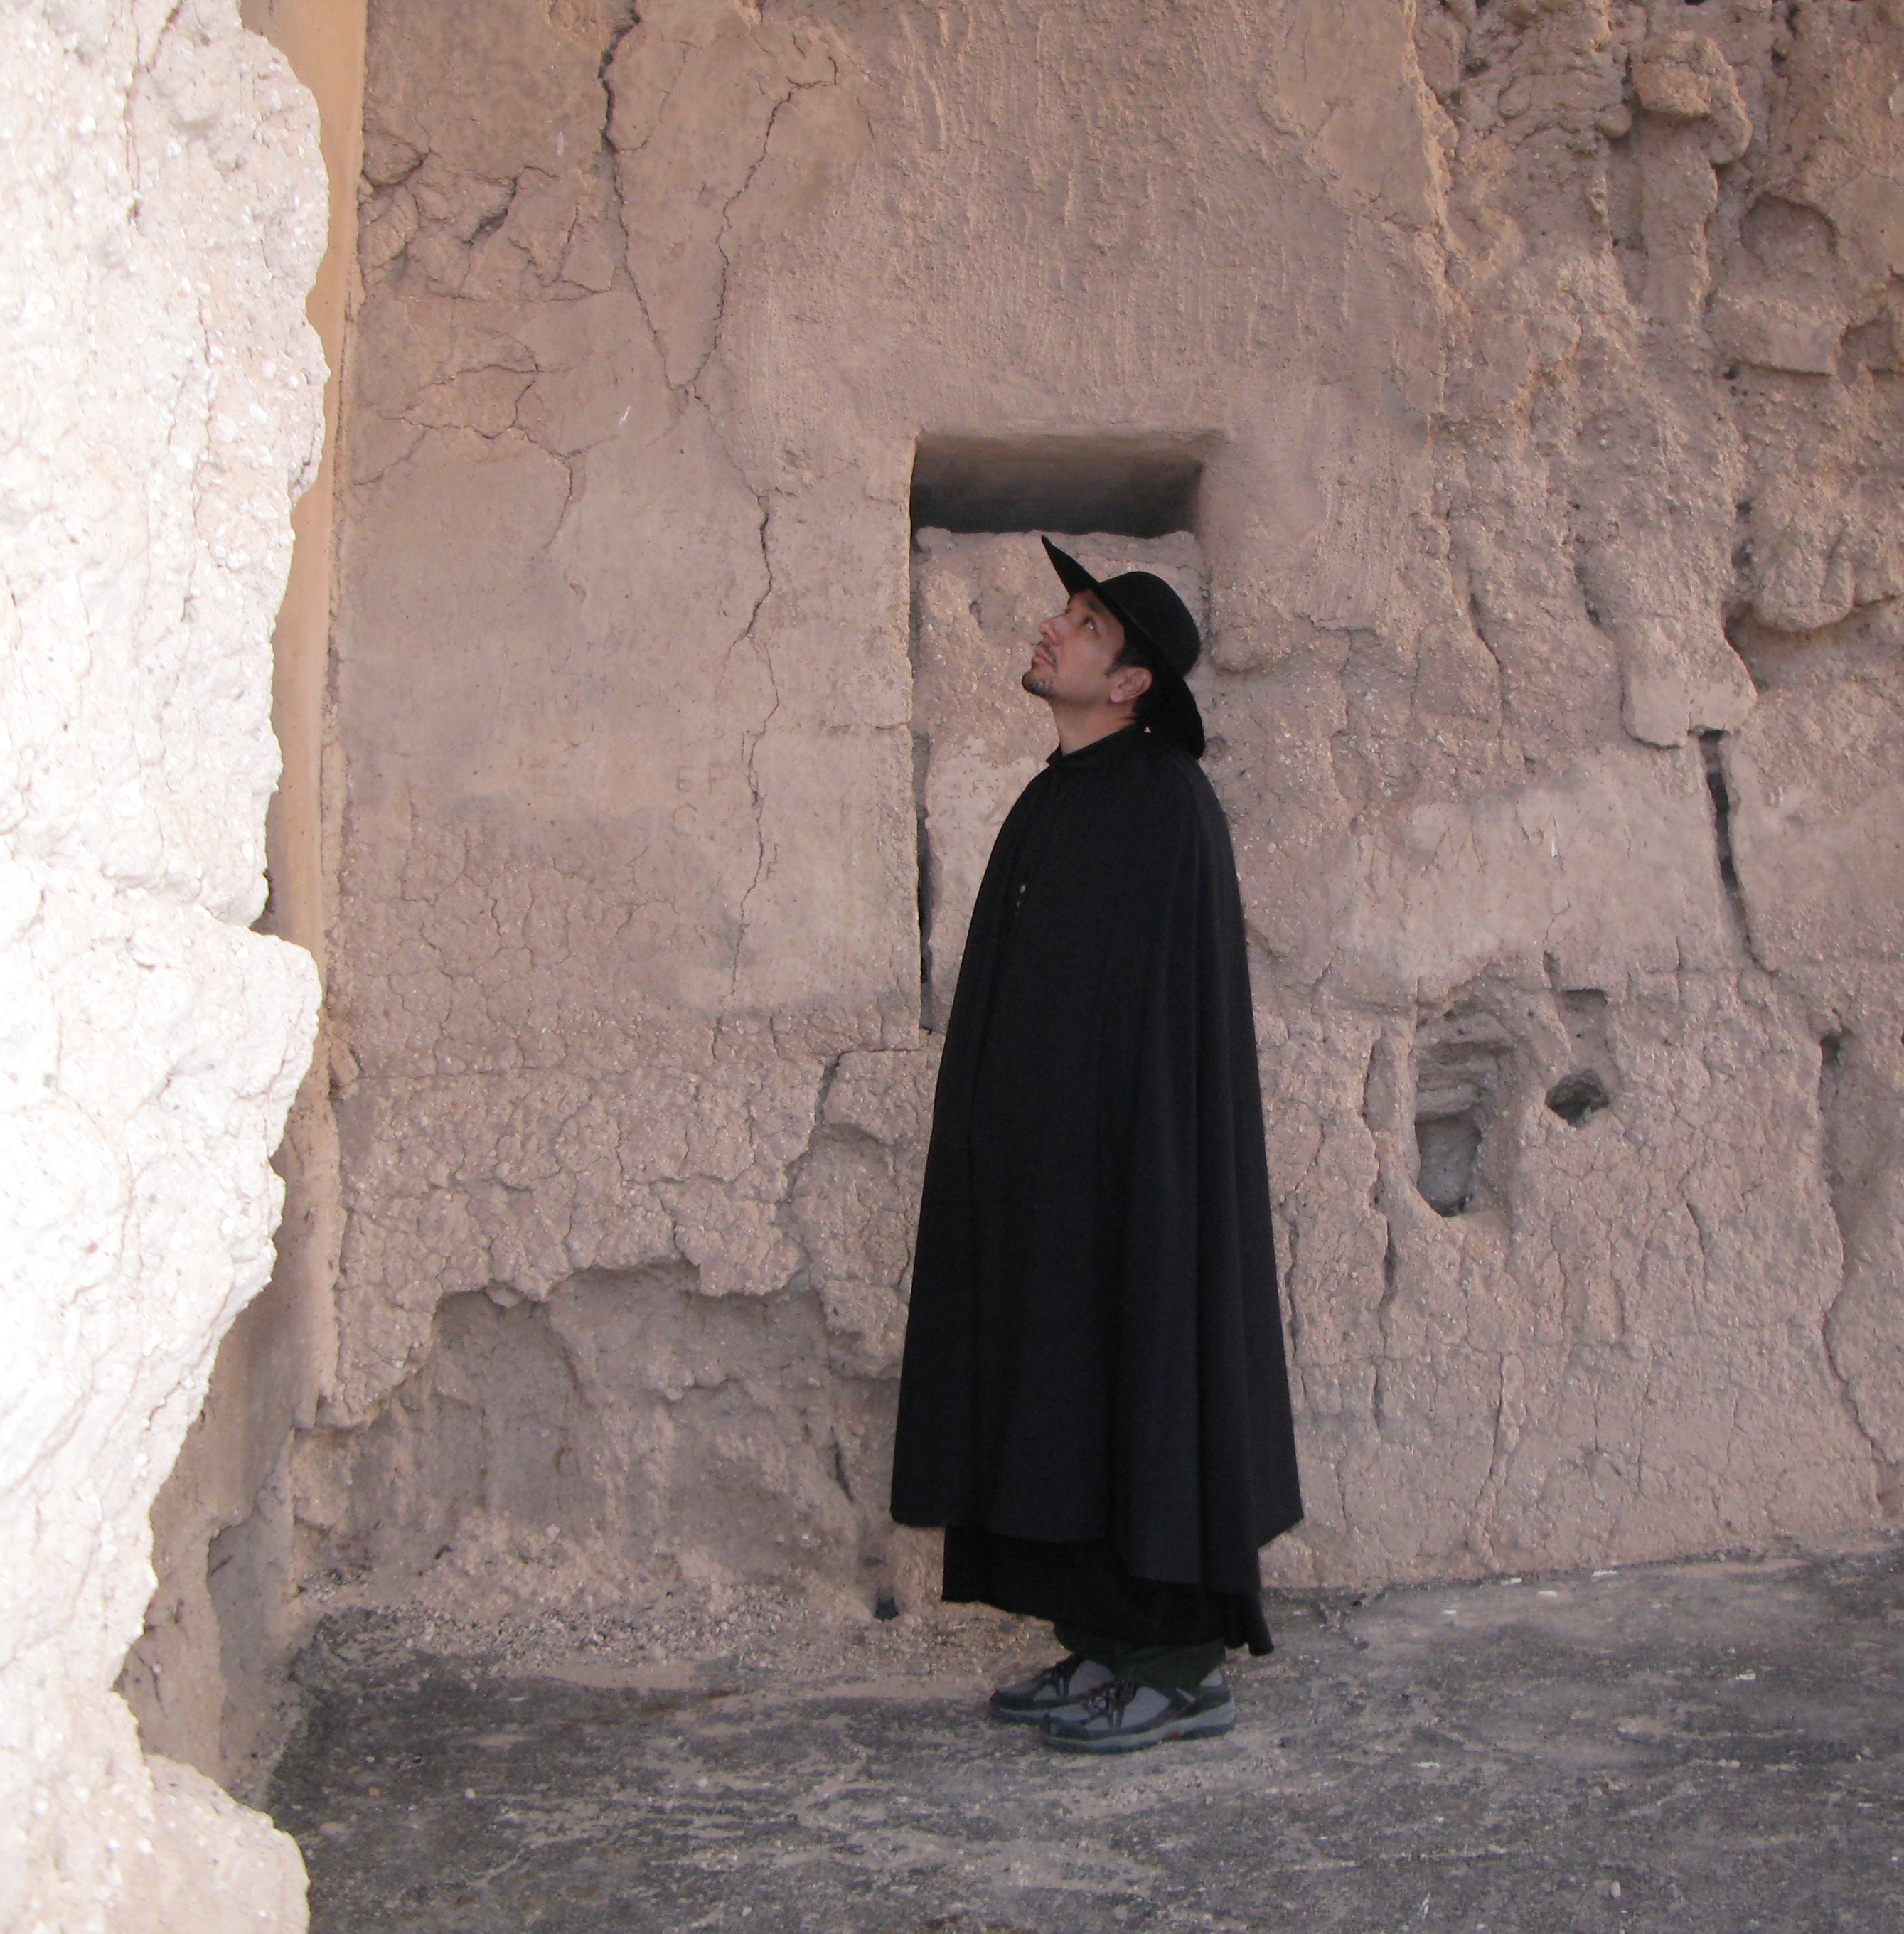 Park Superintendent dressed in dark historical robes  and a dark brimmed hat stands inside the Great House ruins as part of the film shoot